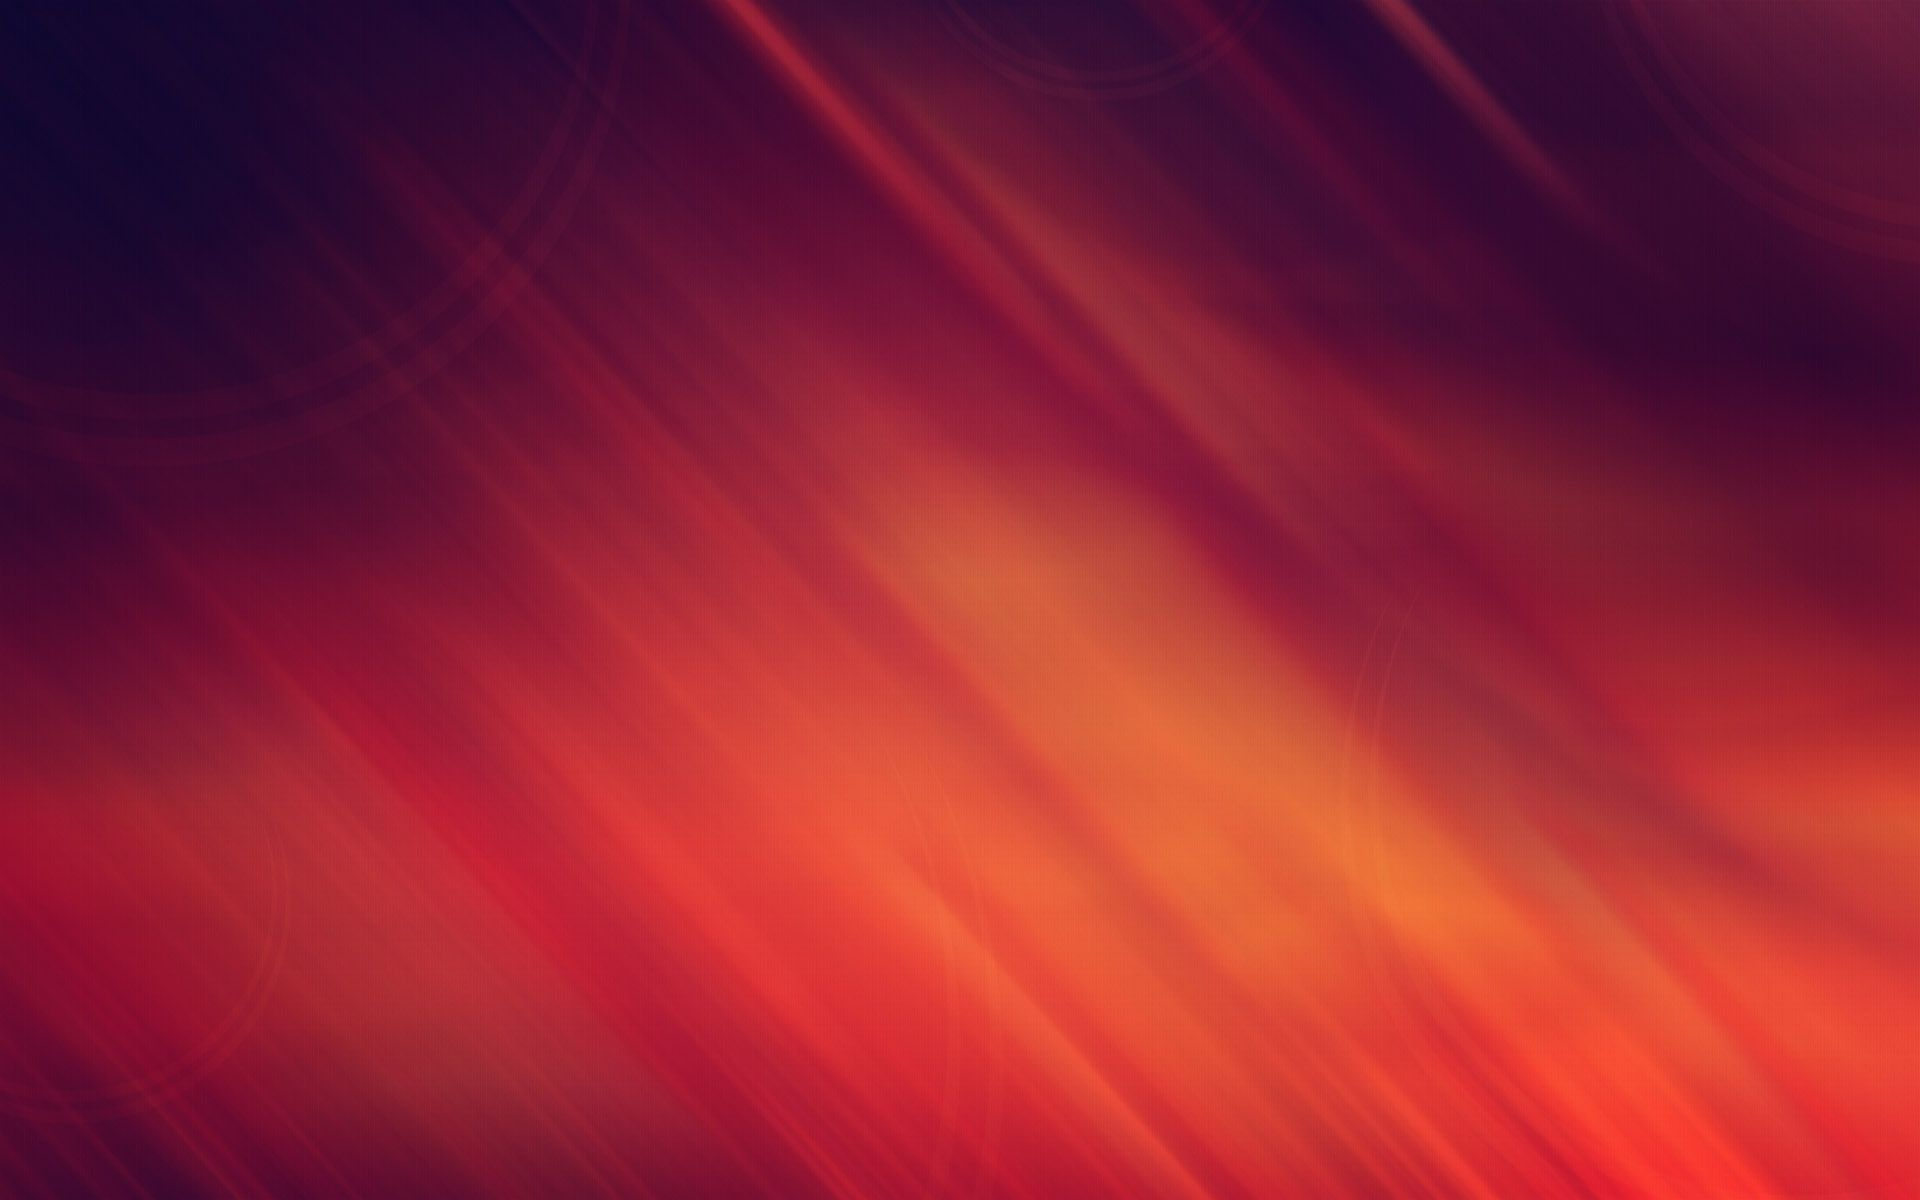 Download stunning red backgrounds 18834 1920x1200 px high - Stunning wallpaper for walls ...